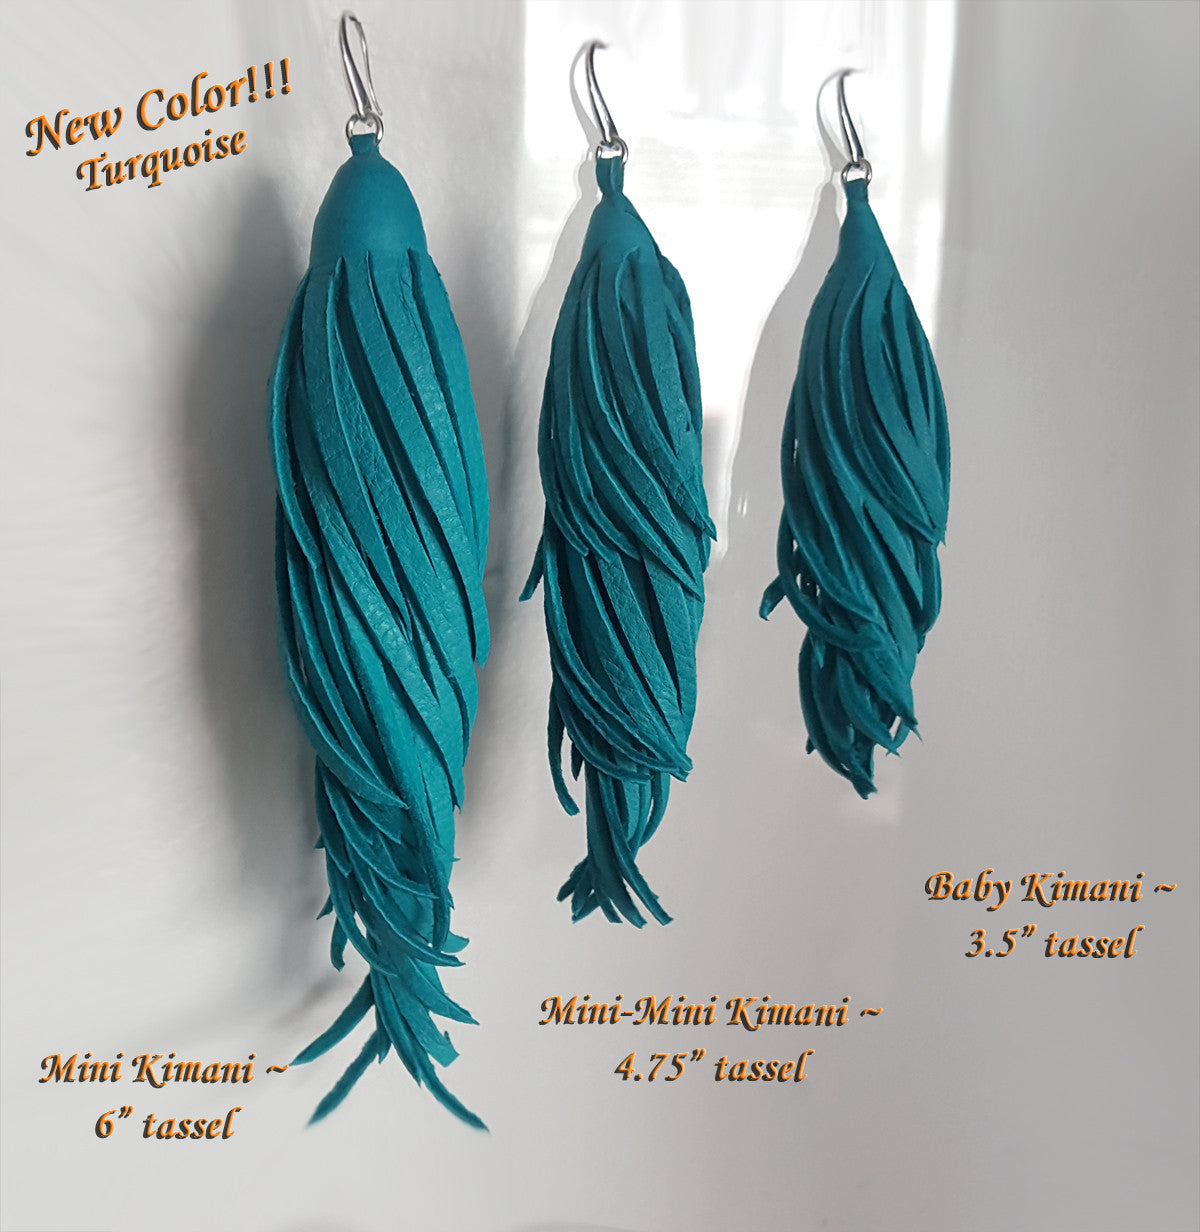 Kimani Leather Tassel Earrings in 4 lengths. New Color, Turquoise